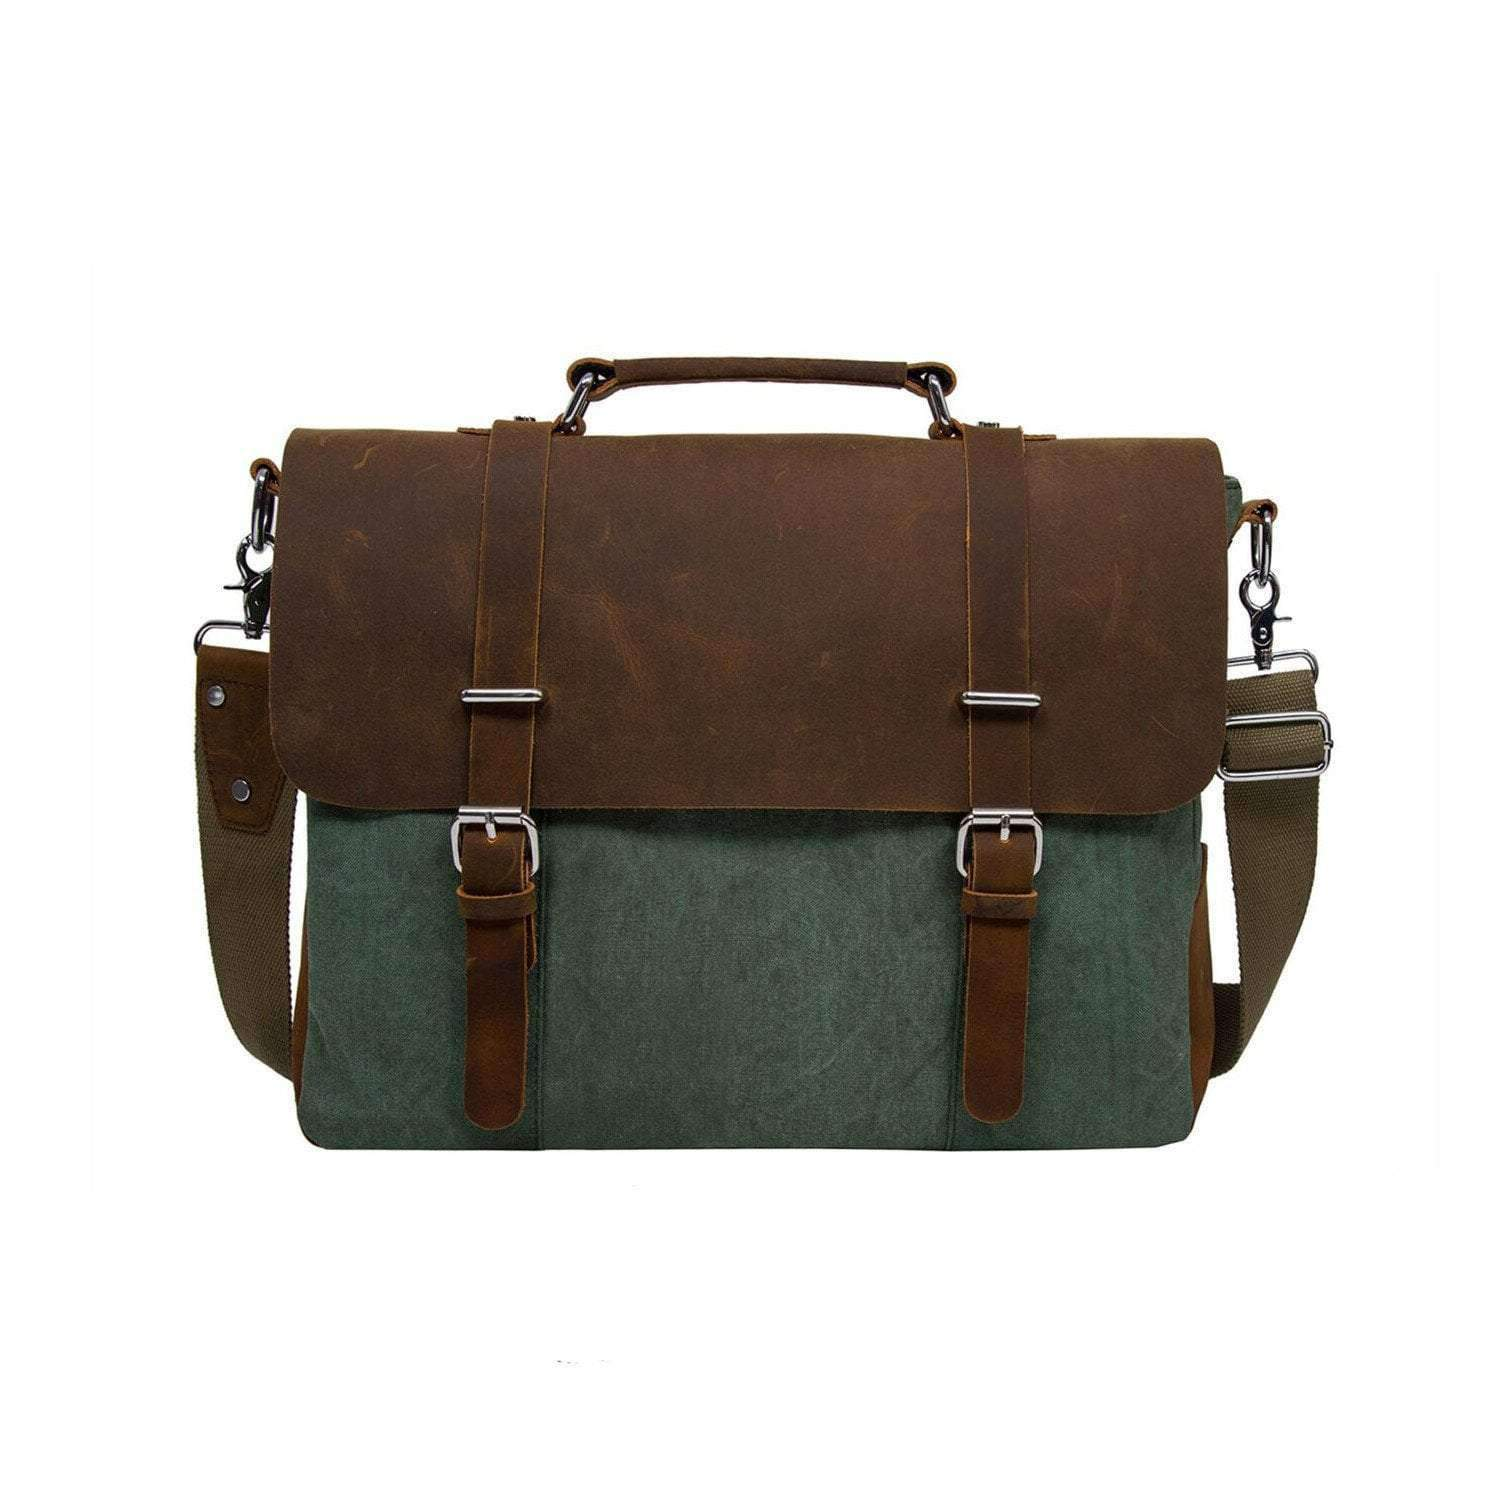 Vintage Canvas & Leather Satchel, Travel Accessory - Dgitrends